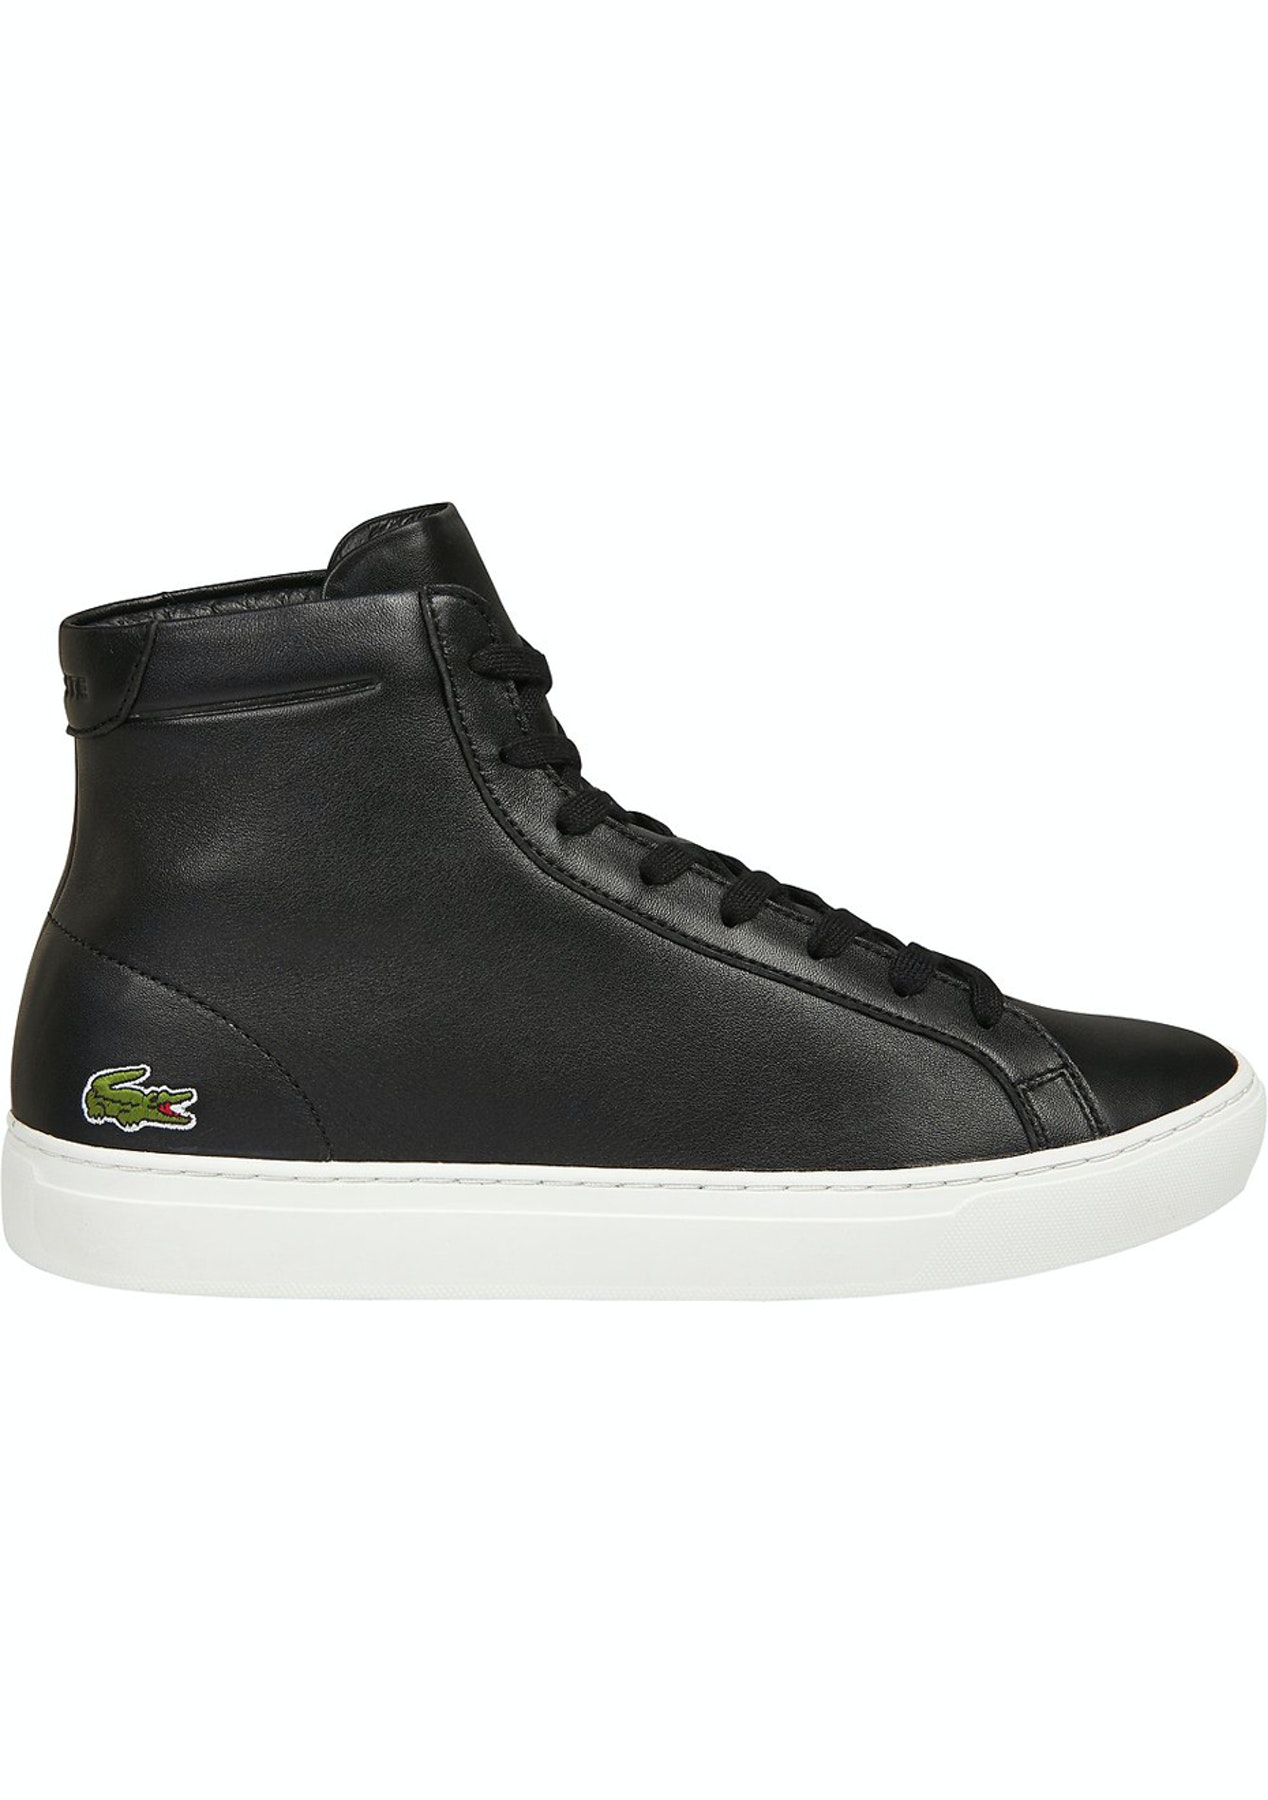 b732609f538e Mens Lacoste - L.12.12 Mid 316 1 - Black - Mens Shoe Sale - Onceit